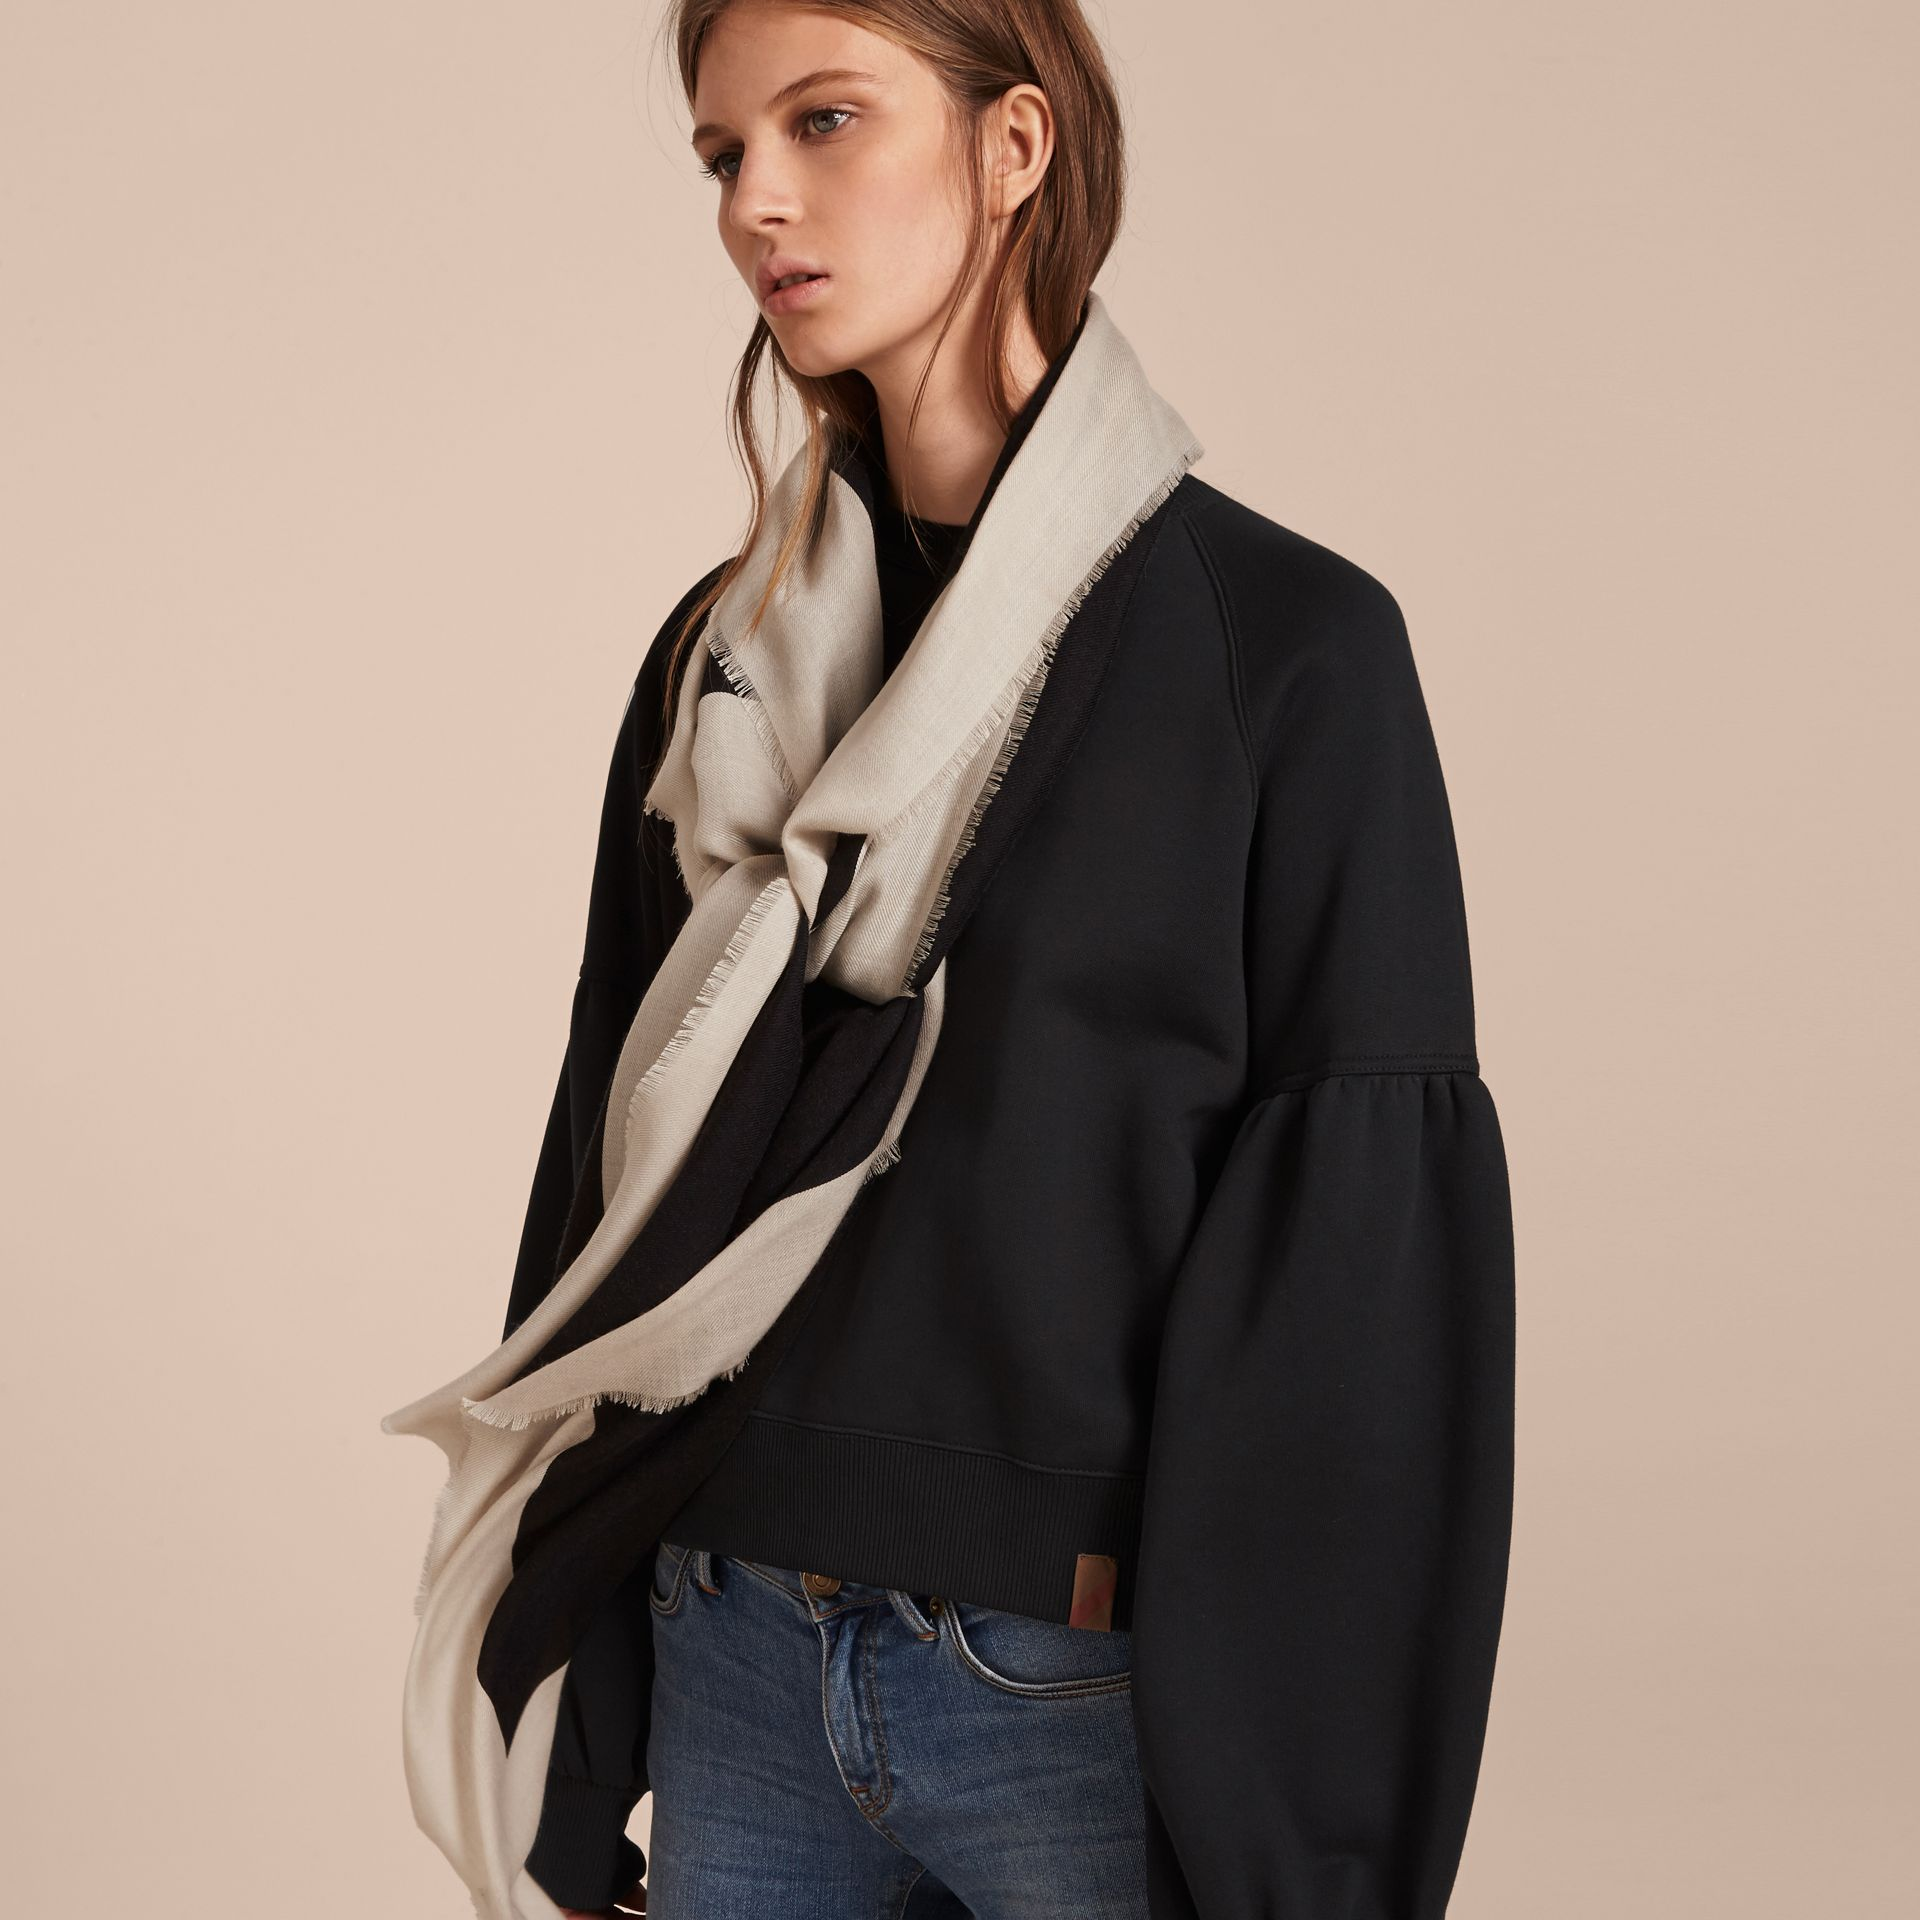 Burberry Print Cashmere Blend Scarf Black/stone - gallery image 3